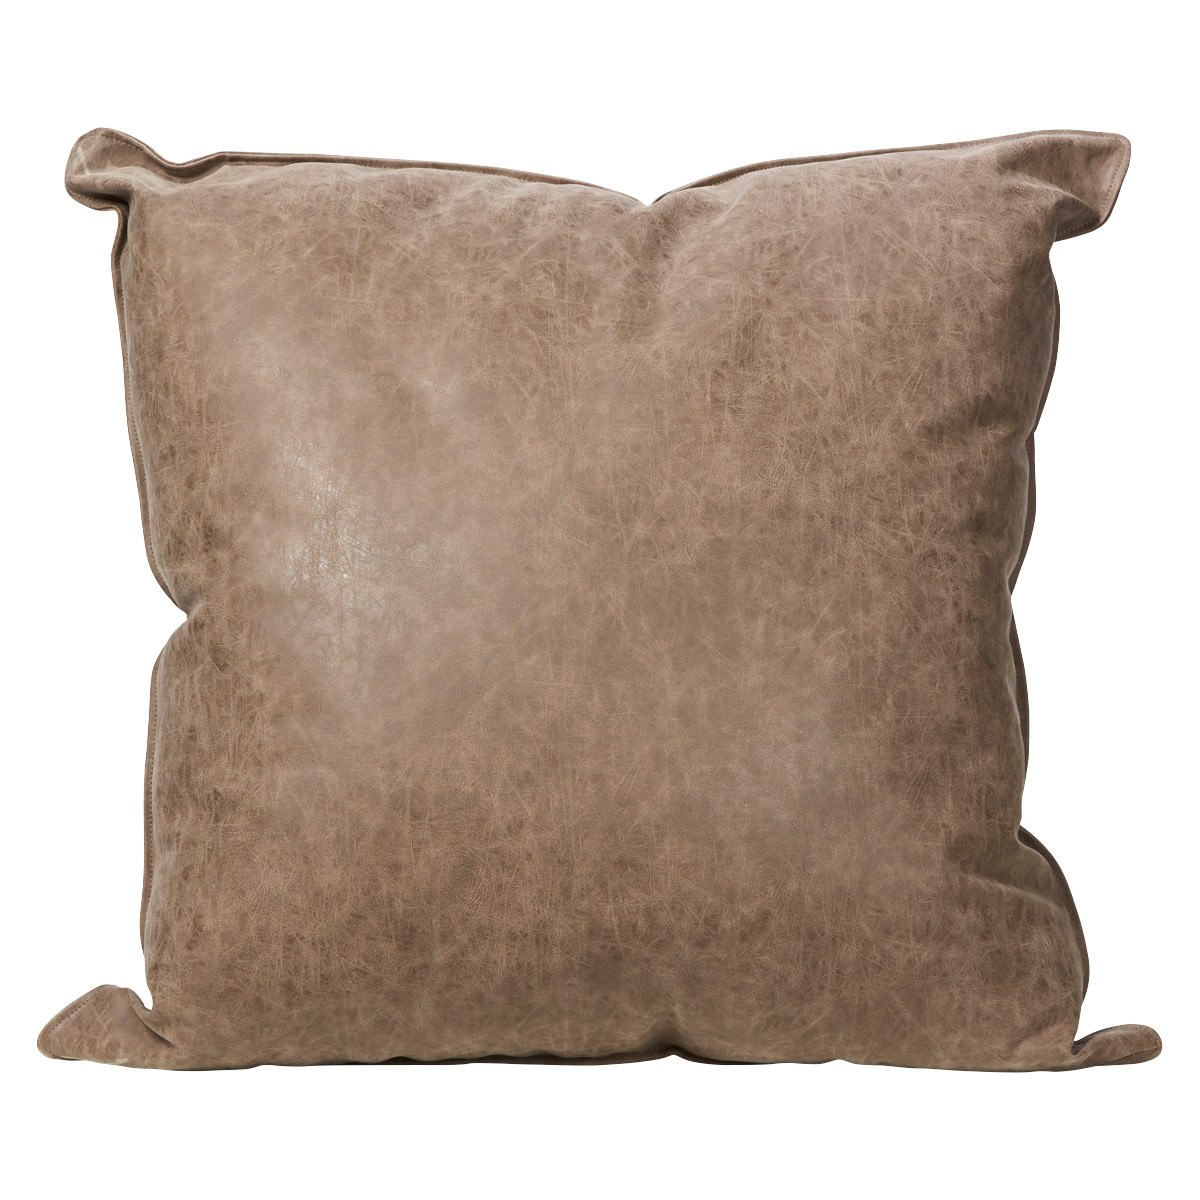 Rover PU Leather Scatter Cushion, 45cm, Chocolate